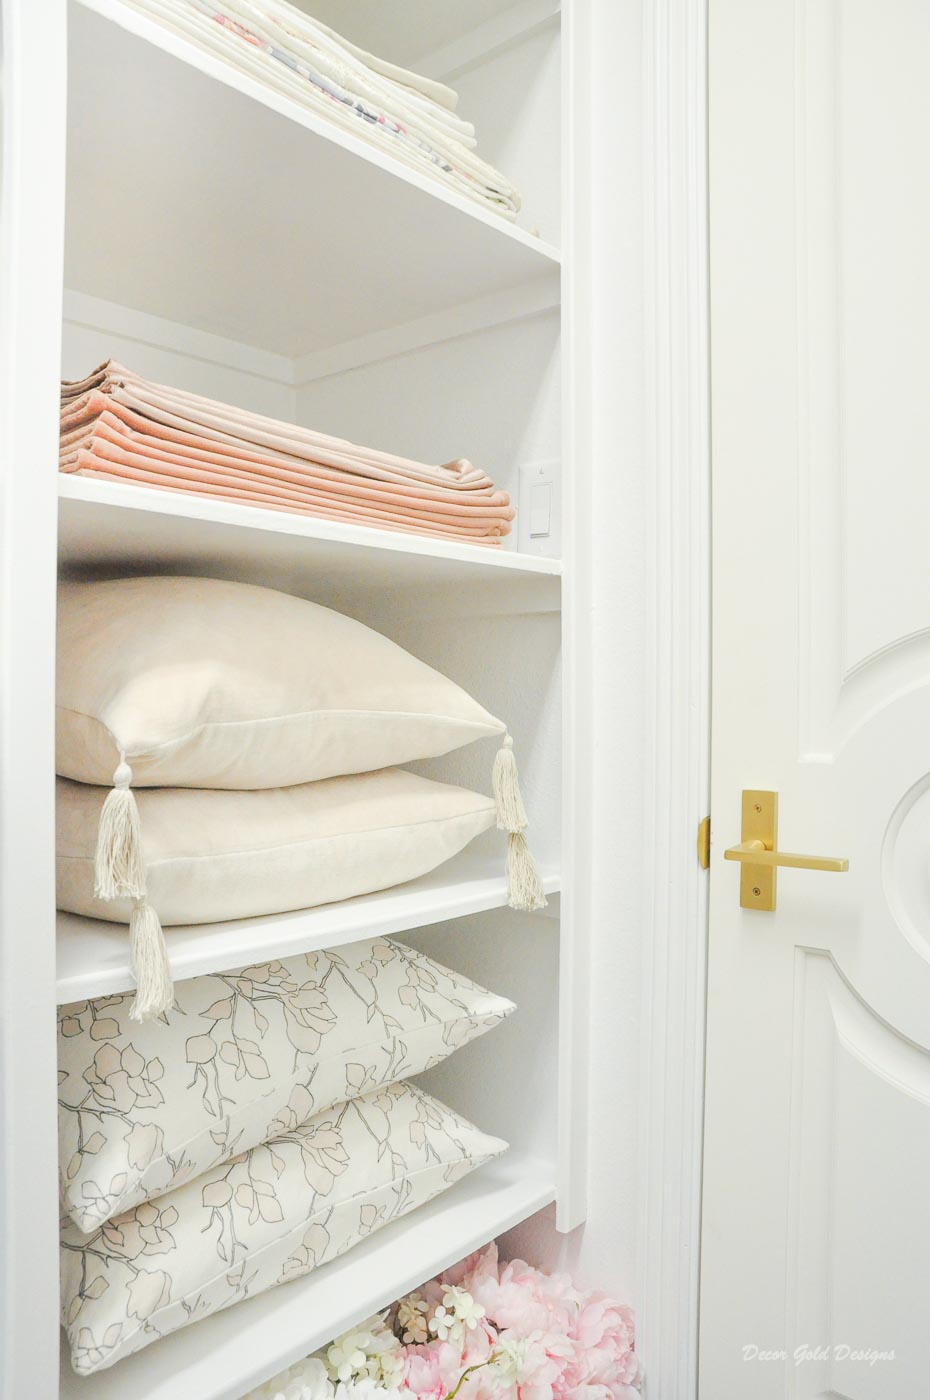 Entertaining closet pillows